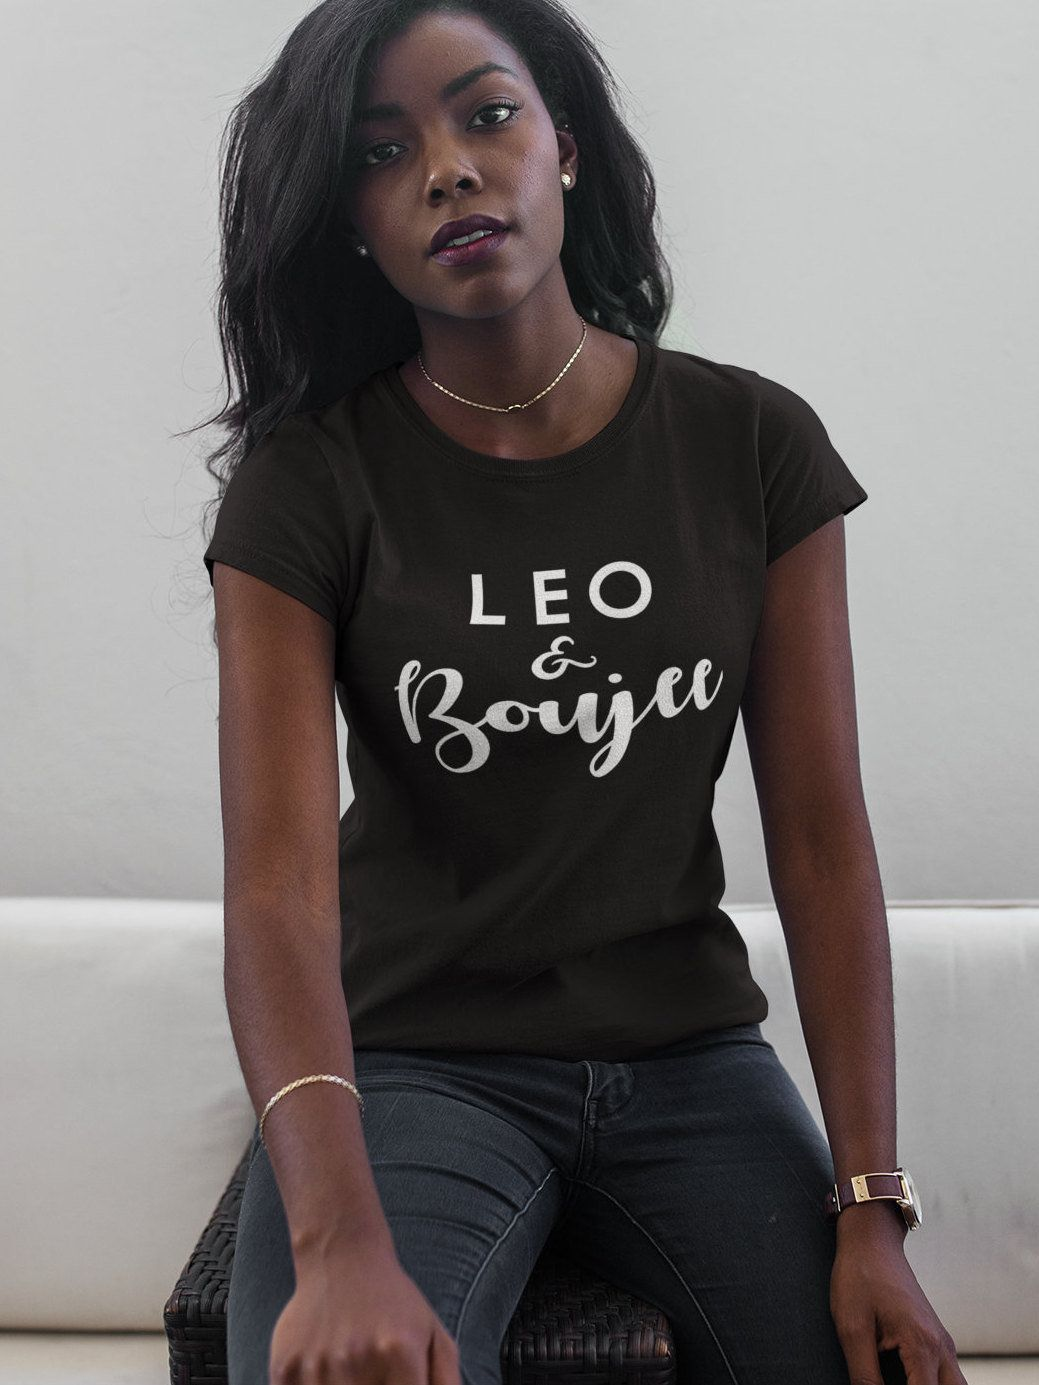 Leo And Boujee Womens T Shirt Born In July August Birthday Gift